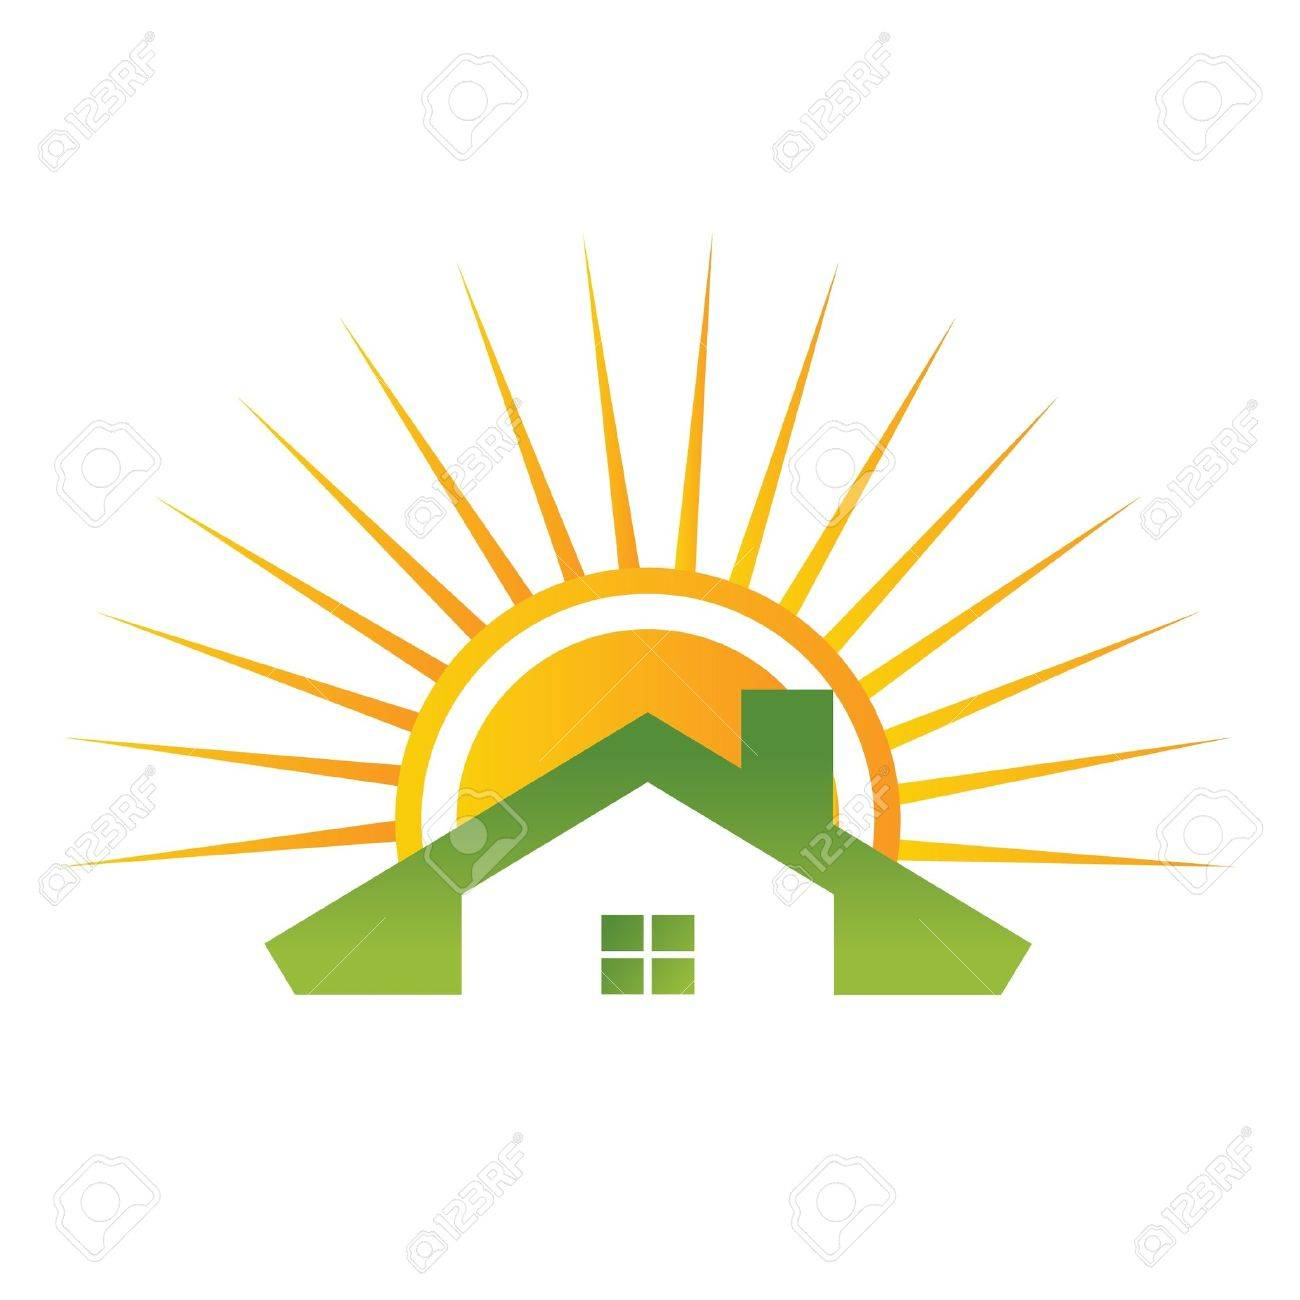 House with roof - 9576139